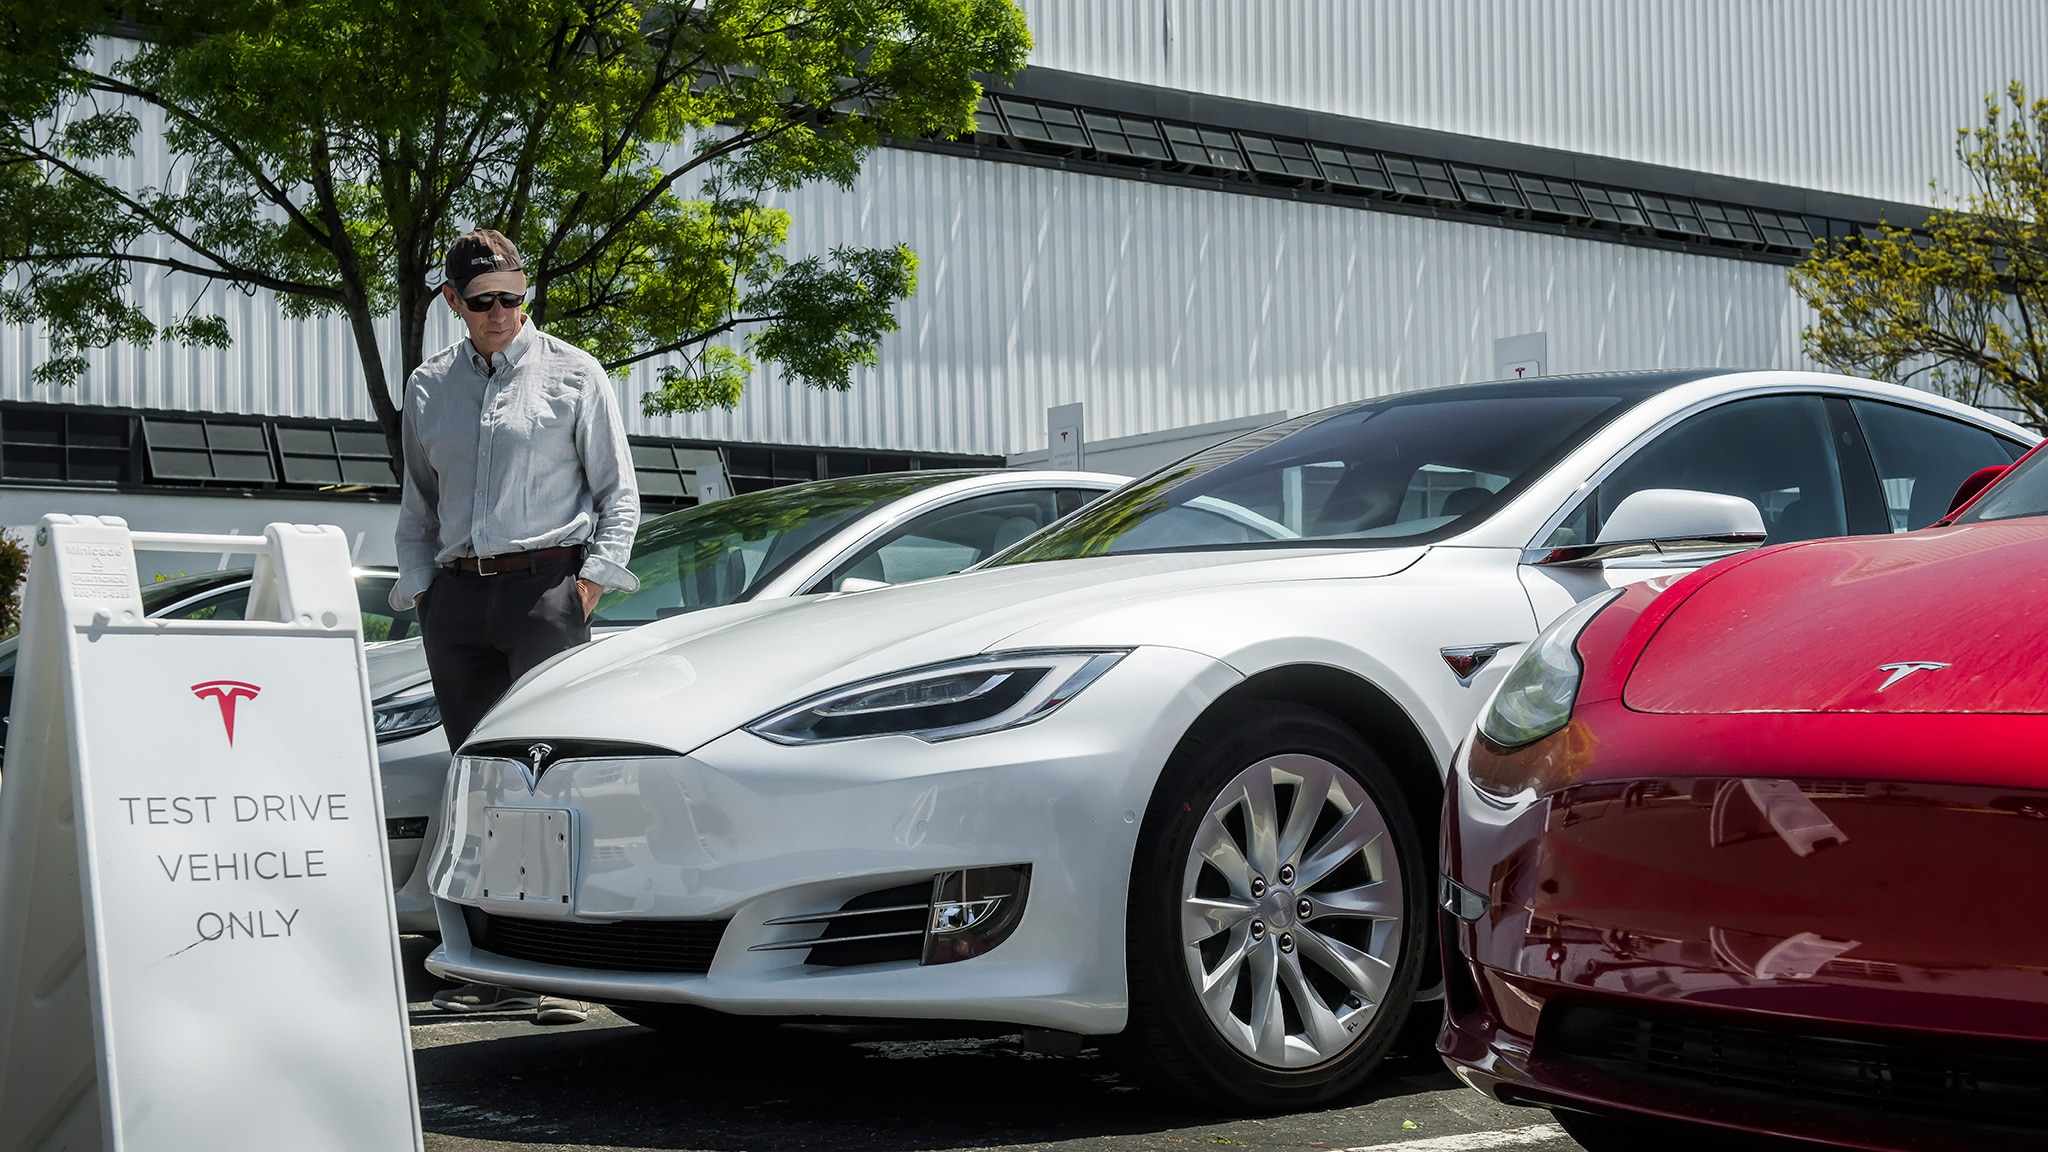 Tesla Model S Gets Major Updates to Range, Charging, and